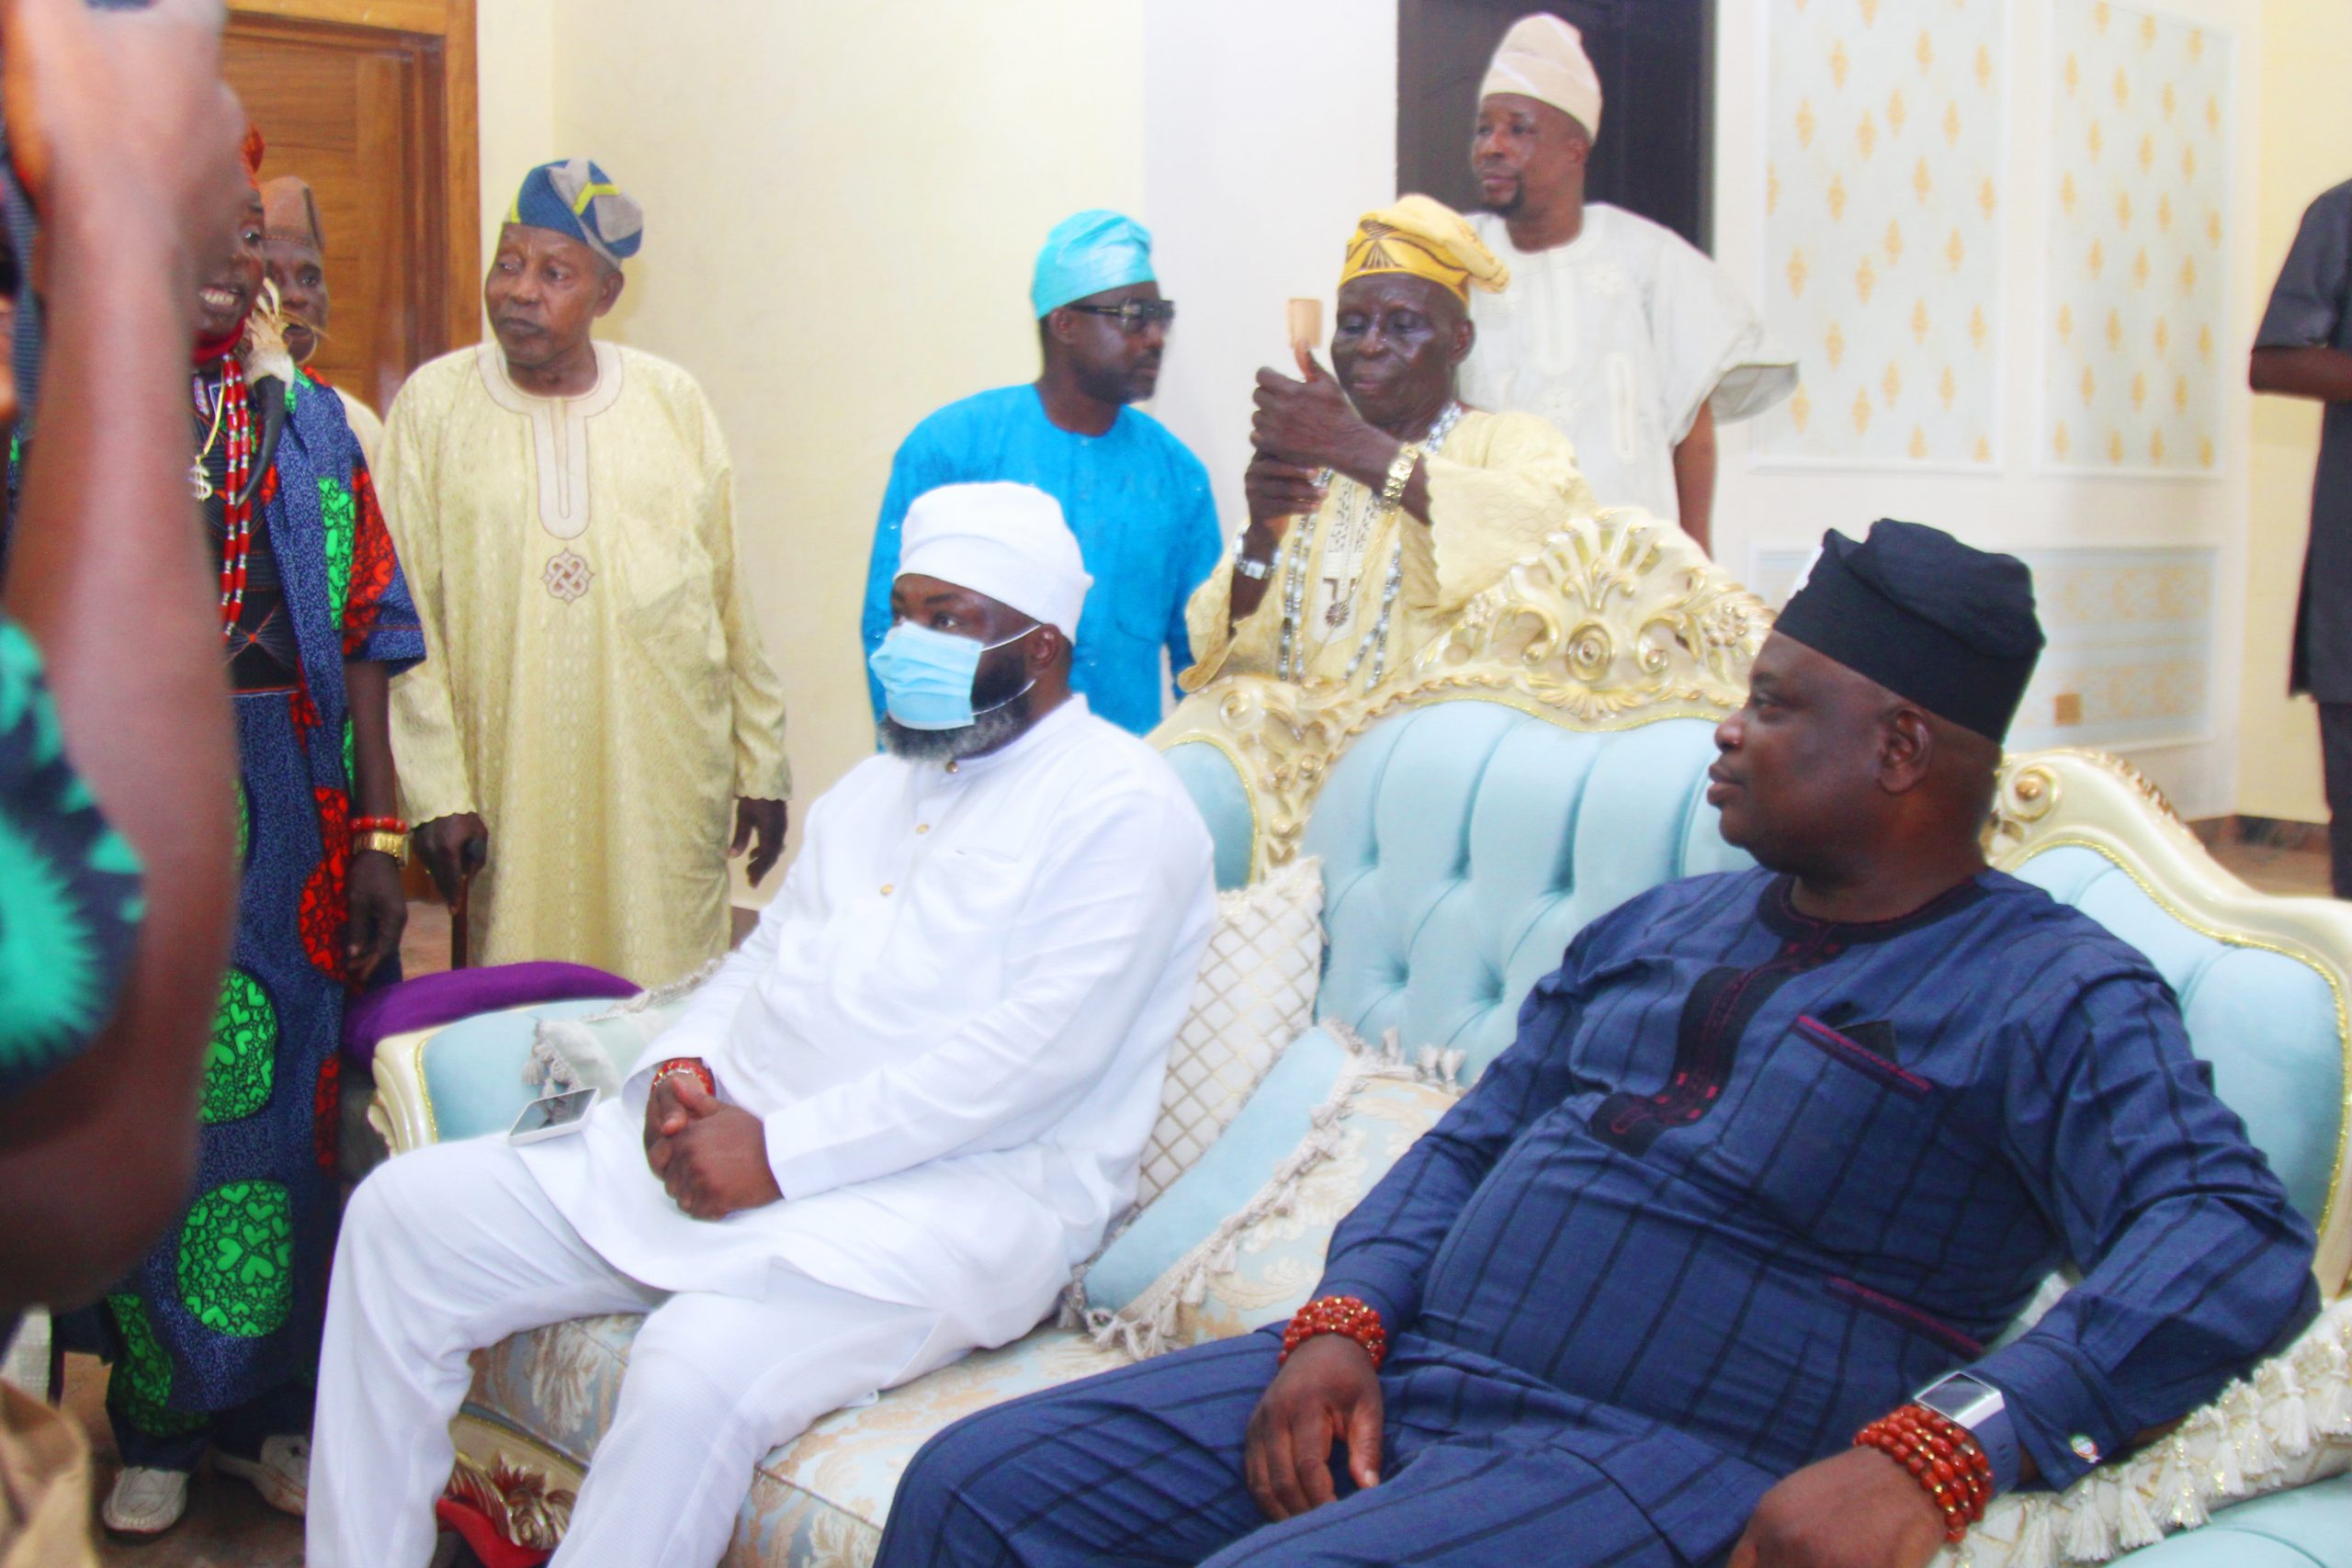 Indigenes, Residents Troop Out To Welcome Prince Ademola Eletu Asorota Back To His Country Home